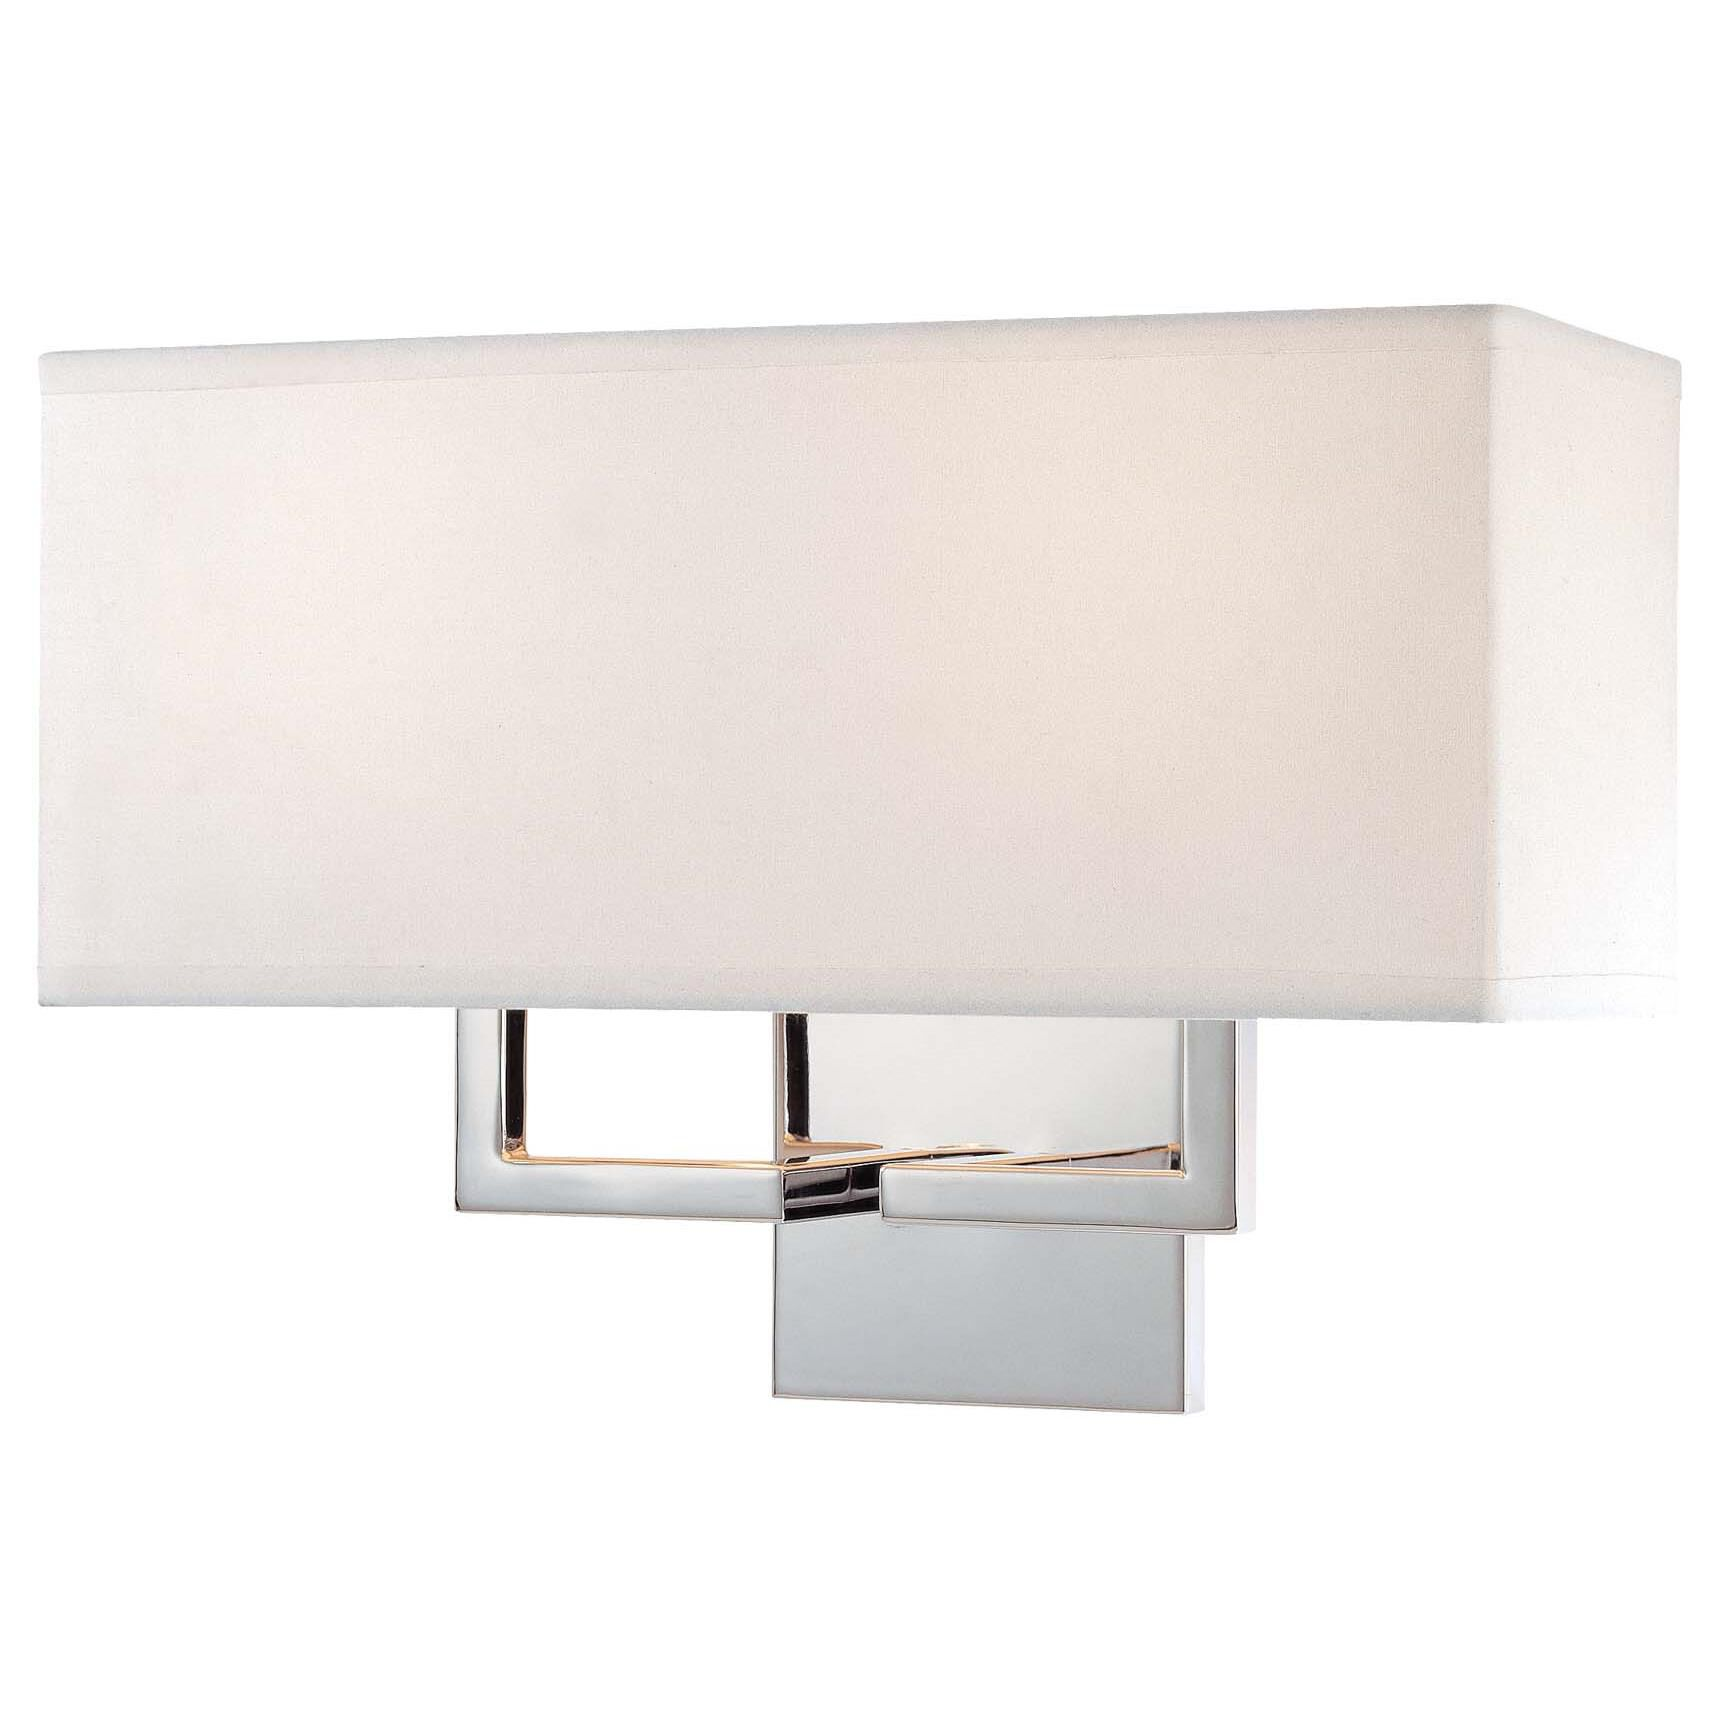 Kovacs 16 Inch Wall Sconce - P472-077 - Transitional